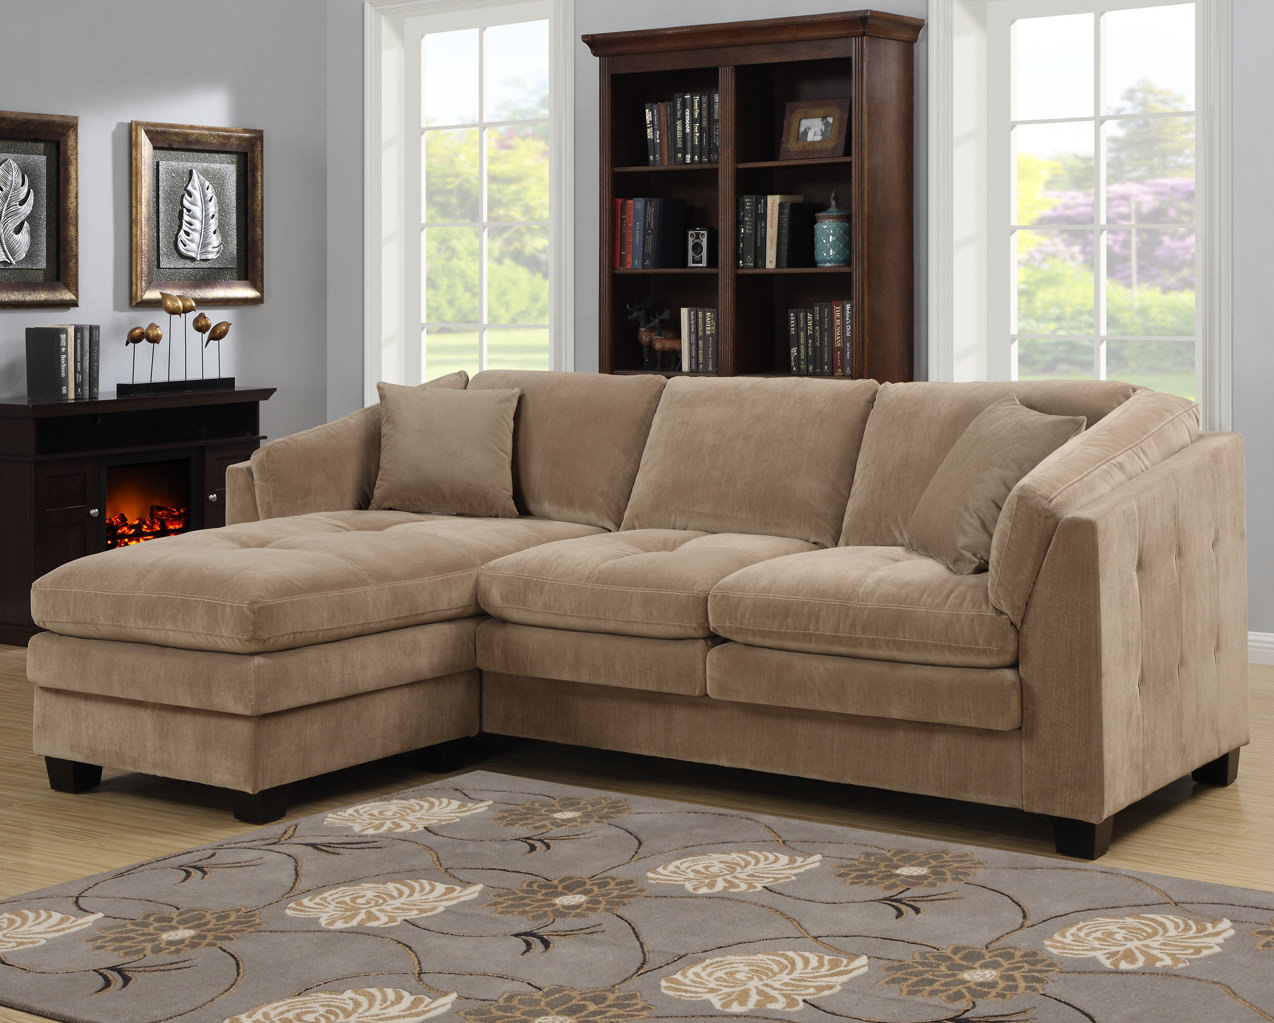 Modular sectional sofa microfiber modular sectional sofa for Microfiber sectional sofa